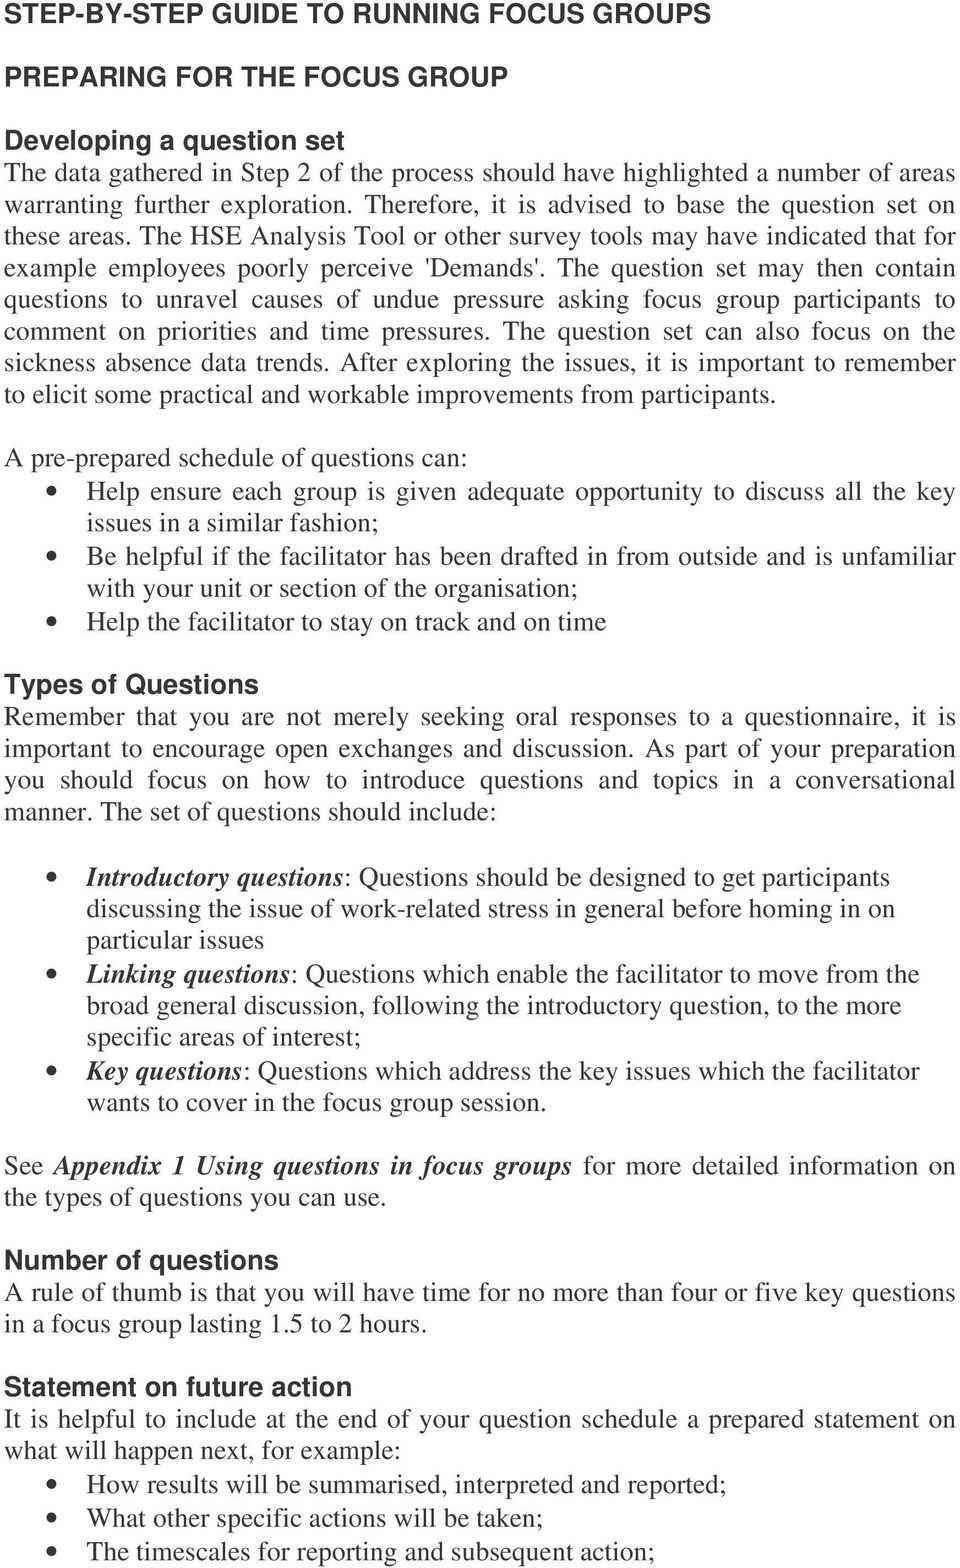 How To Organise And Run Focus Groups - Pdf pertaining to Focus Group Discussion Report Template